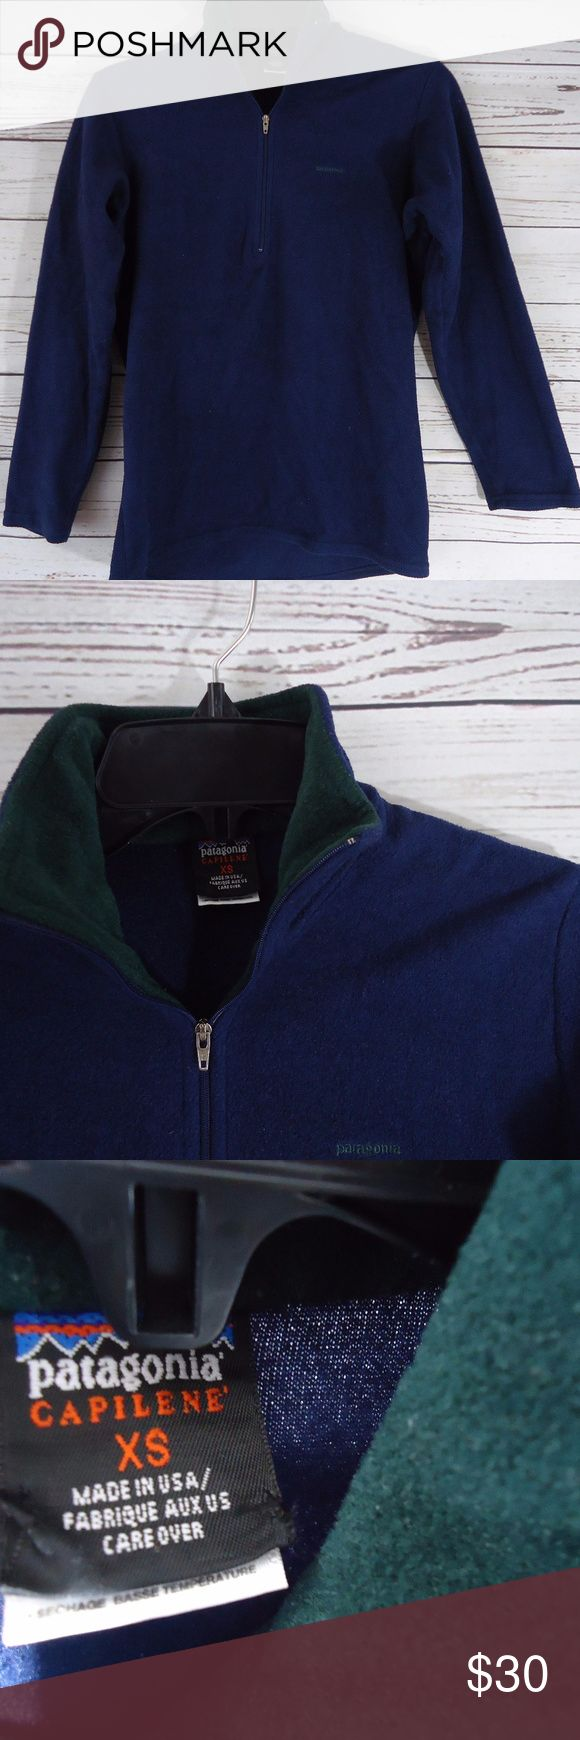 Patagonia Capilene Pullover Half Zip Fleece Cozy Patagonia Capilene Pullover Half Zip Fleece Size XS  Navy Blue & Green Patagonia Sweaters